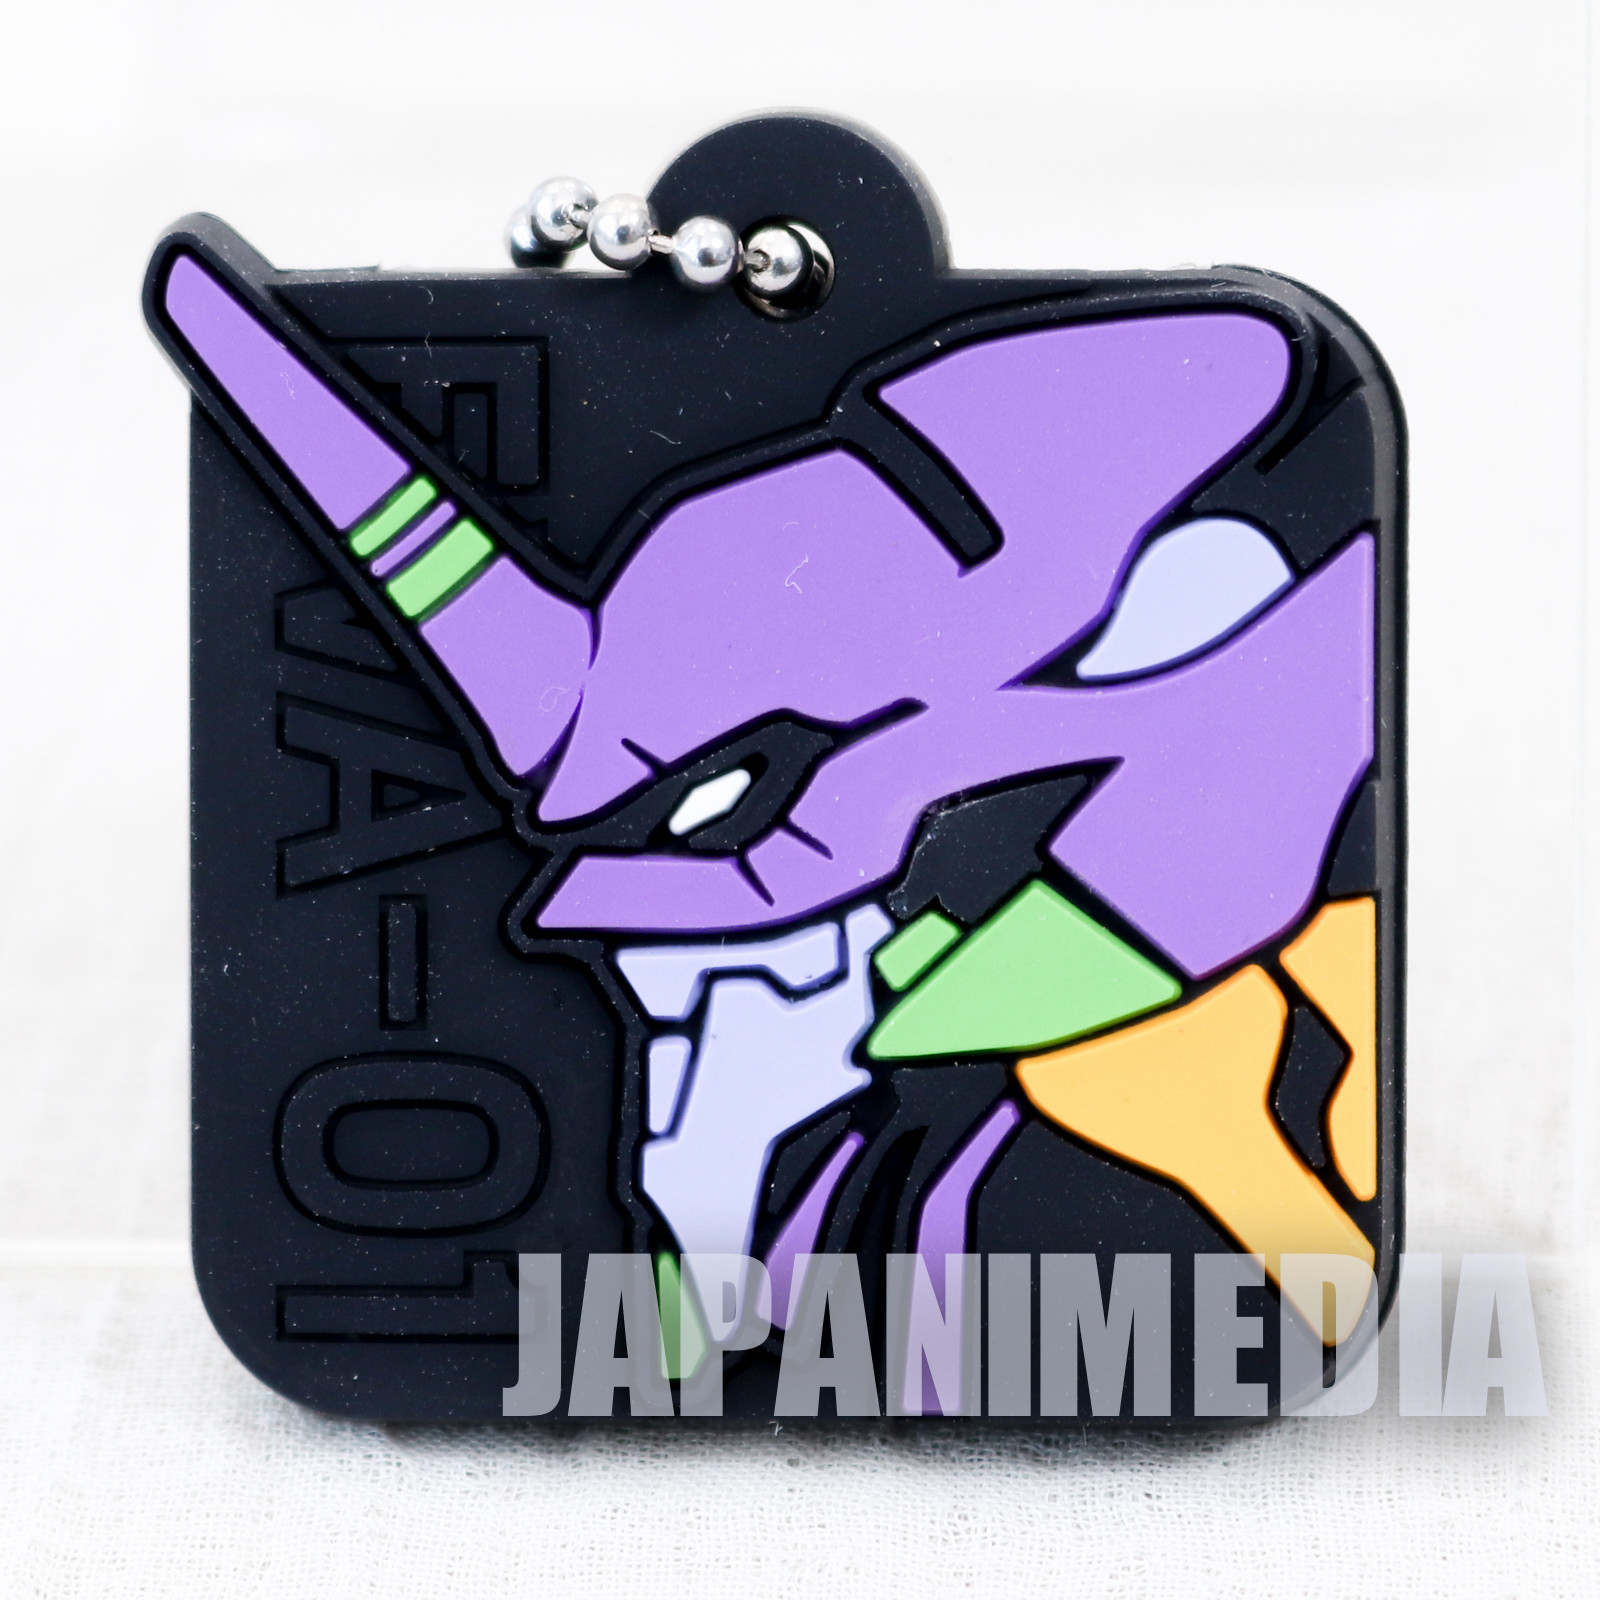 Evangelion EVA-01 Head Rubber Mascot Key Cover JAPAN ANIME